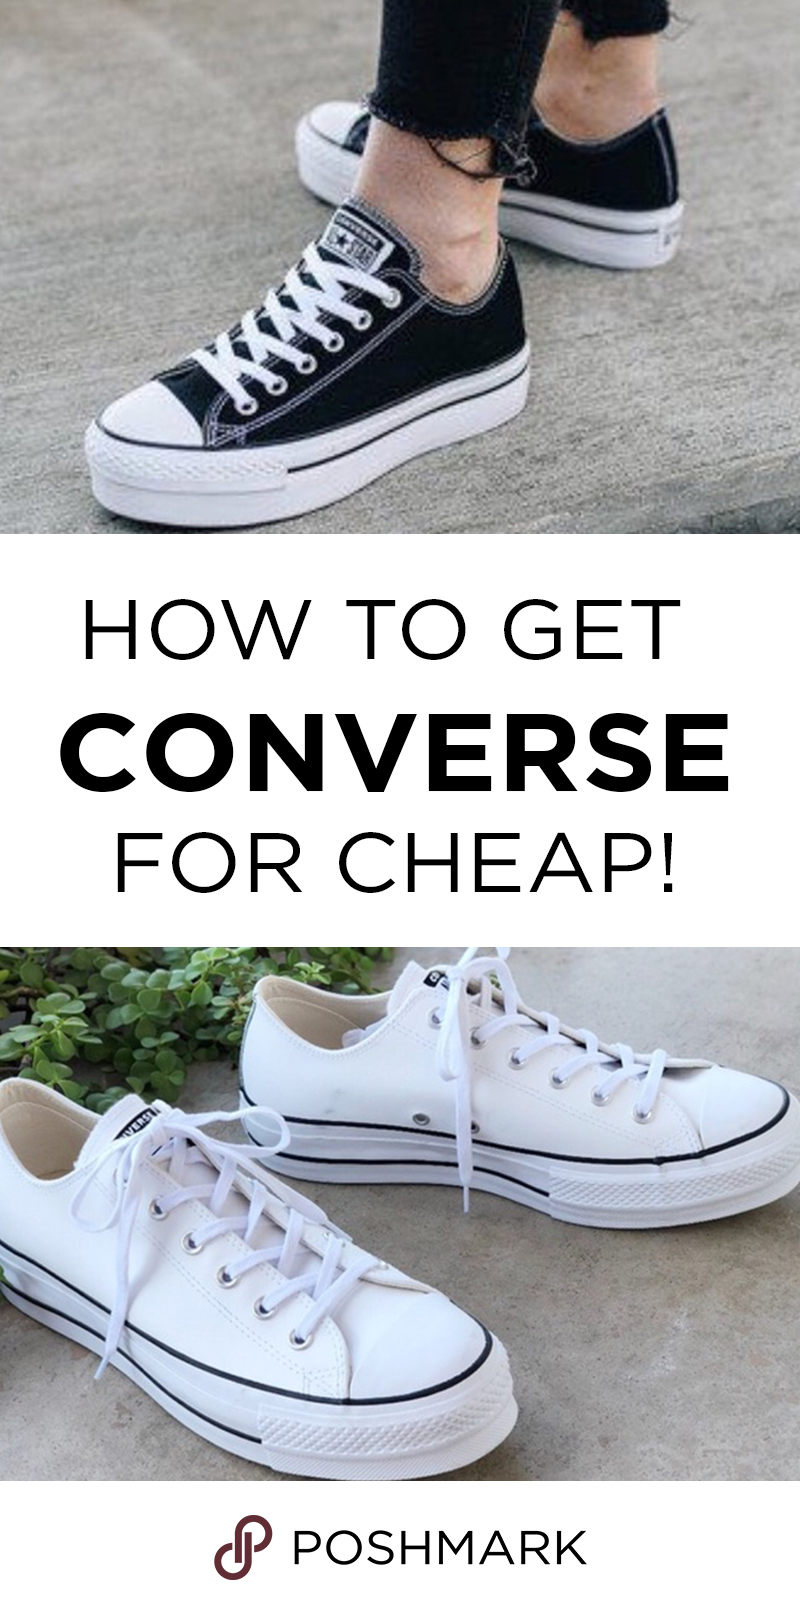 the best attitude 6fffe 9c9f7 Find Converse sneakers up to 70% off on Poshmark! Download the app today to  shop!